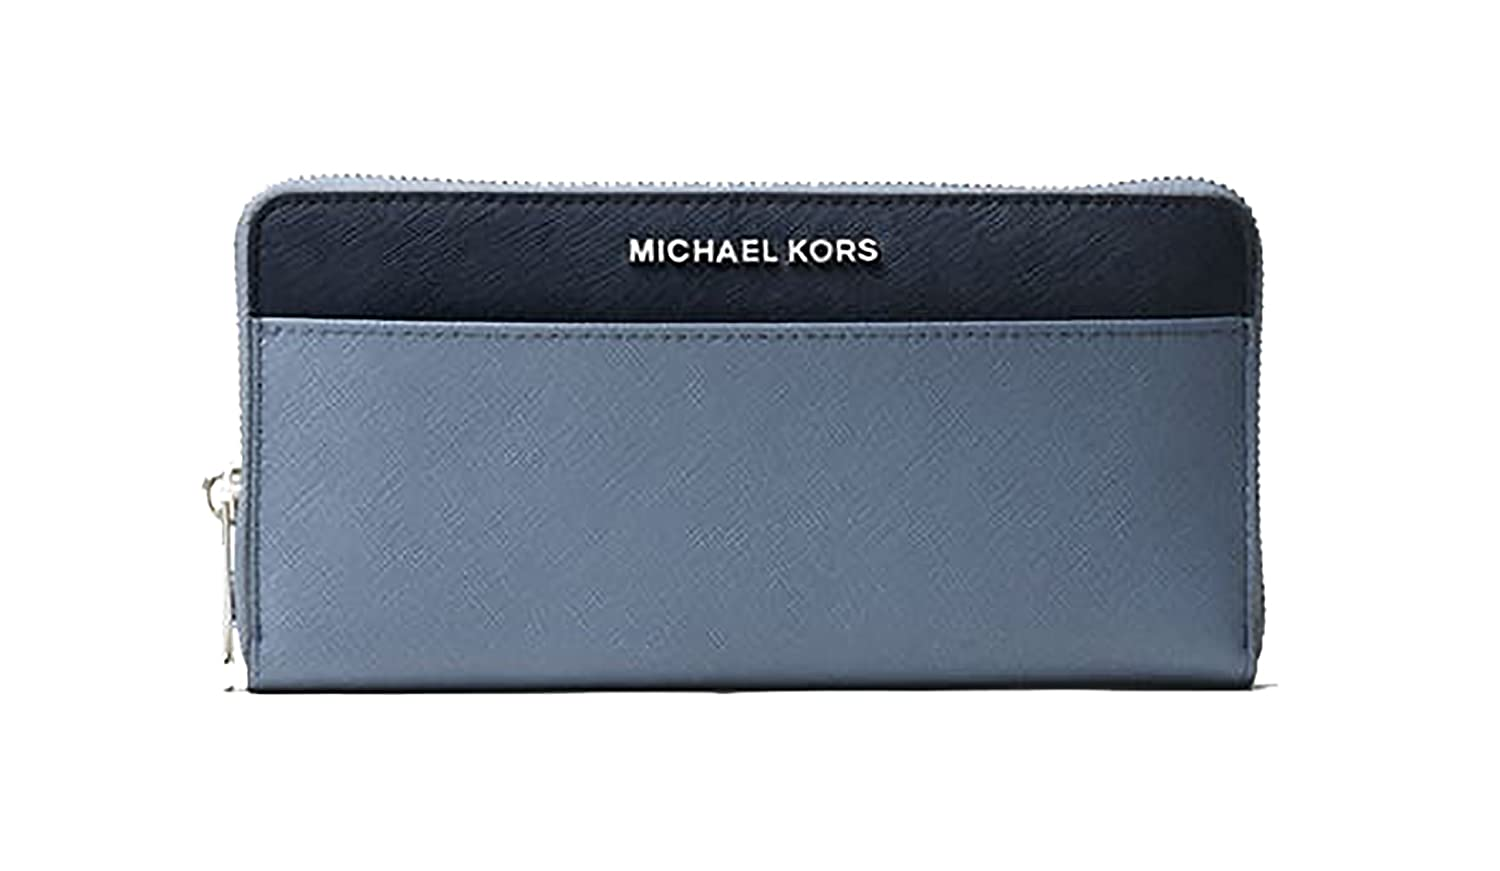 14ff7feaa079 Michael Kors Jet Set Travel Colorblock Pocket Continental Wallet in Denim/ Admiral: Amazon.co.uk: Luggage